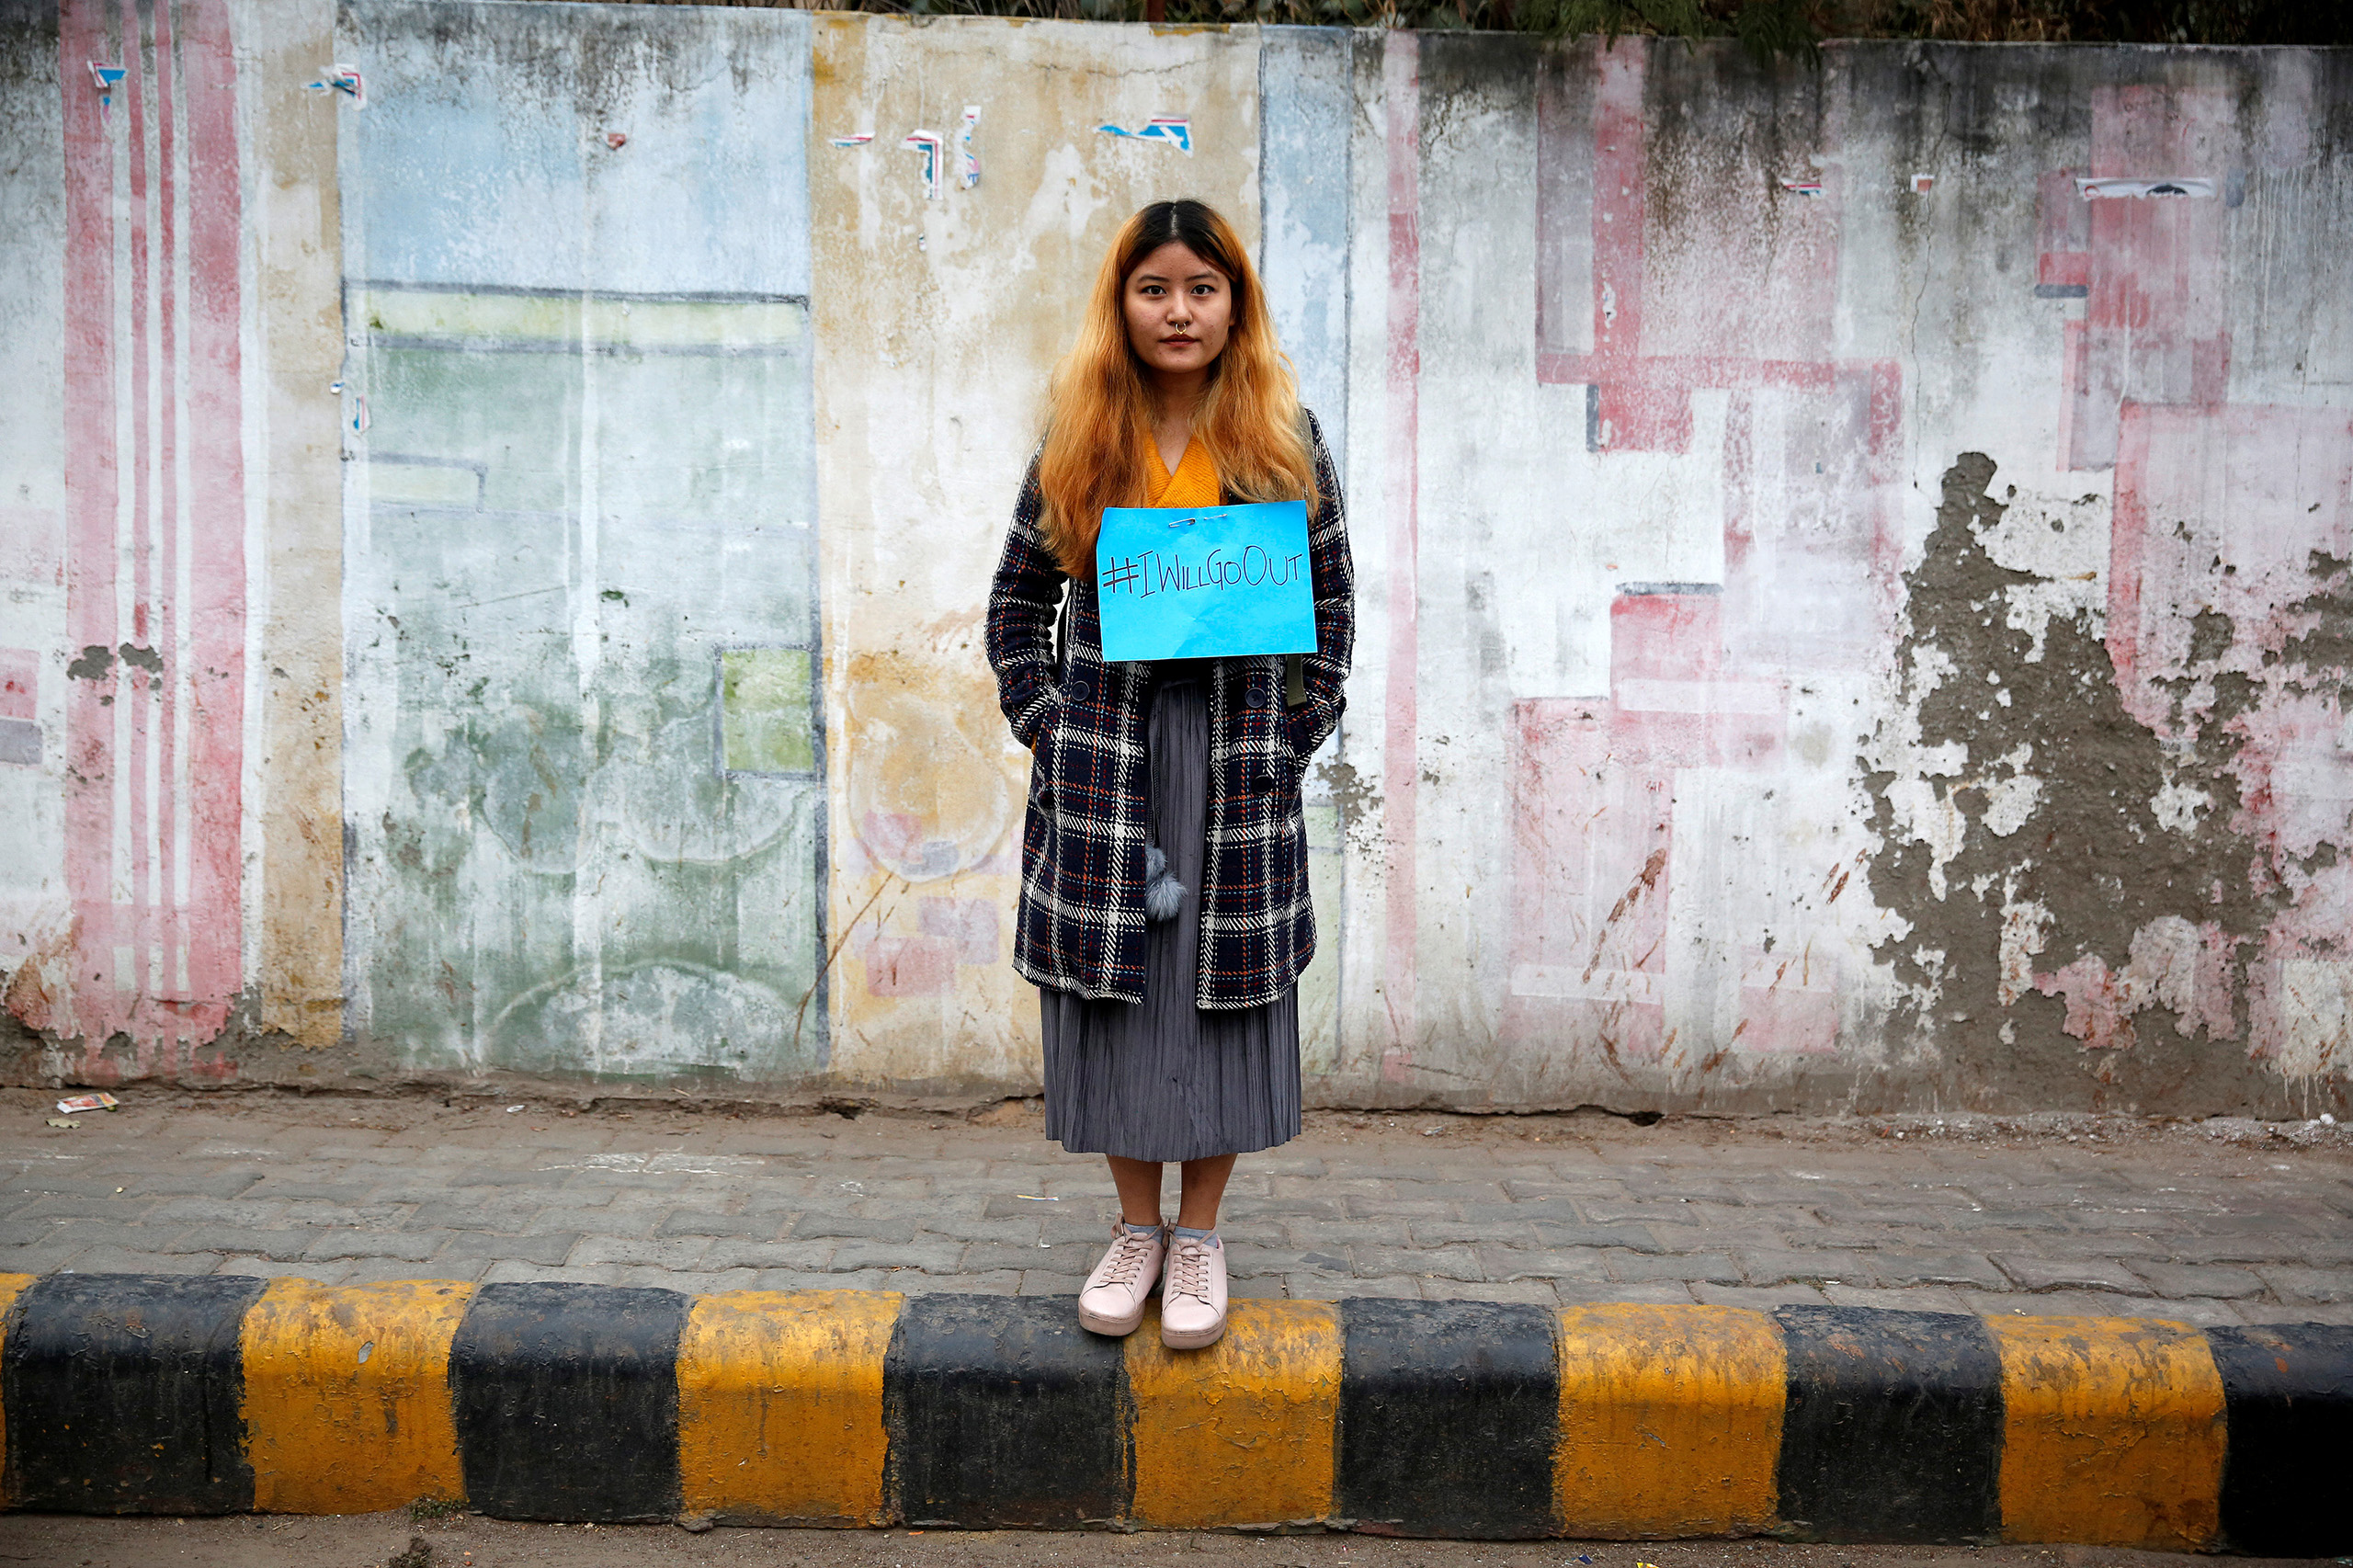 A woman waits for the start of the #IWillGoOut rally, organized to show solidarity with the Women's March in Washington, along a street in New Delhi, India Jan.21, 2017.